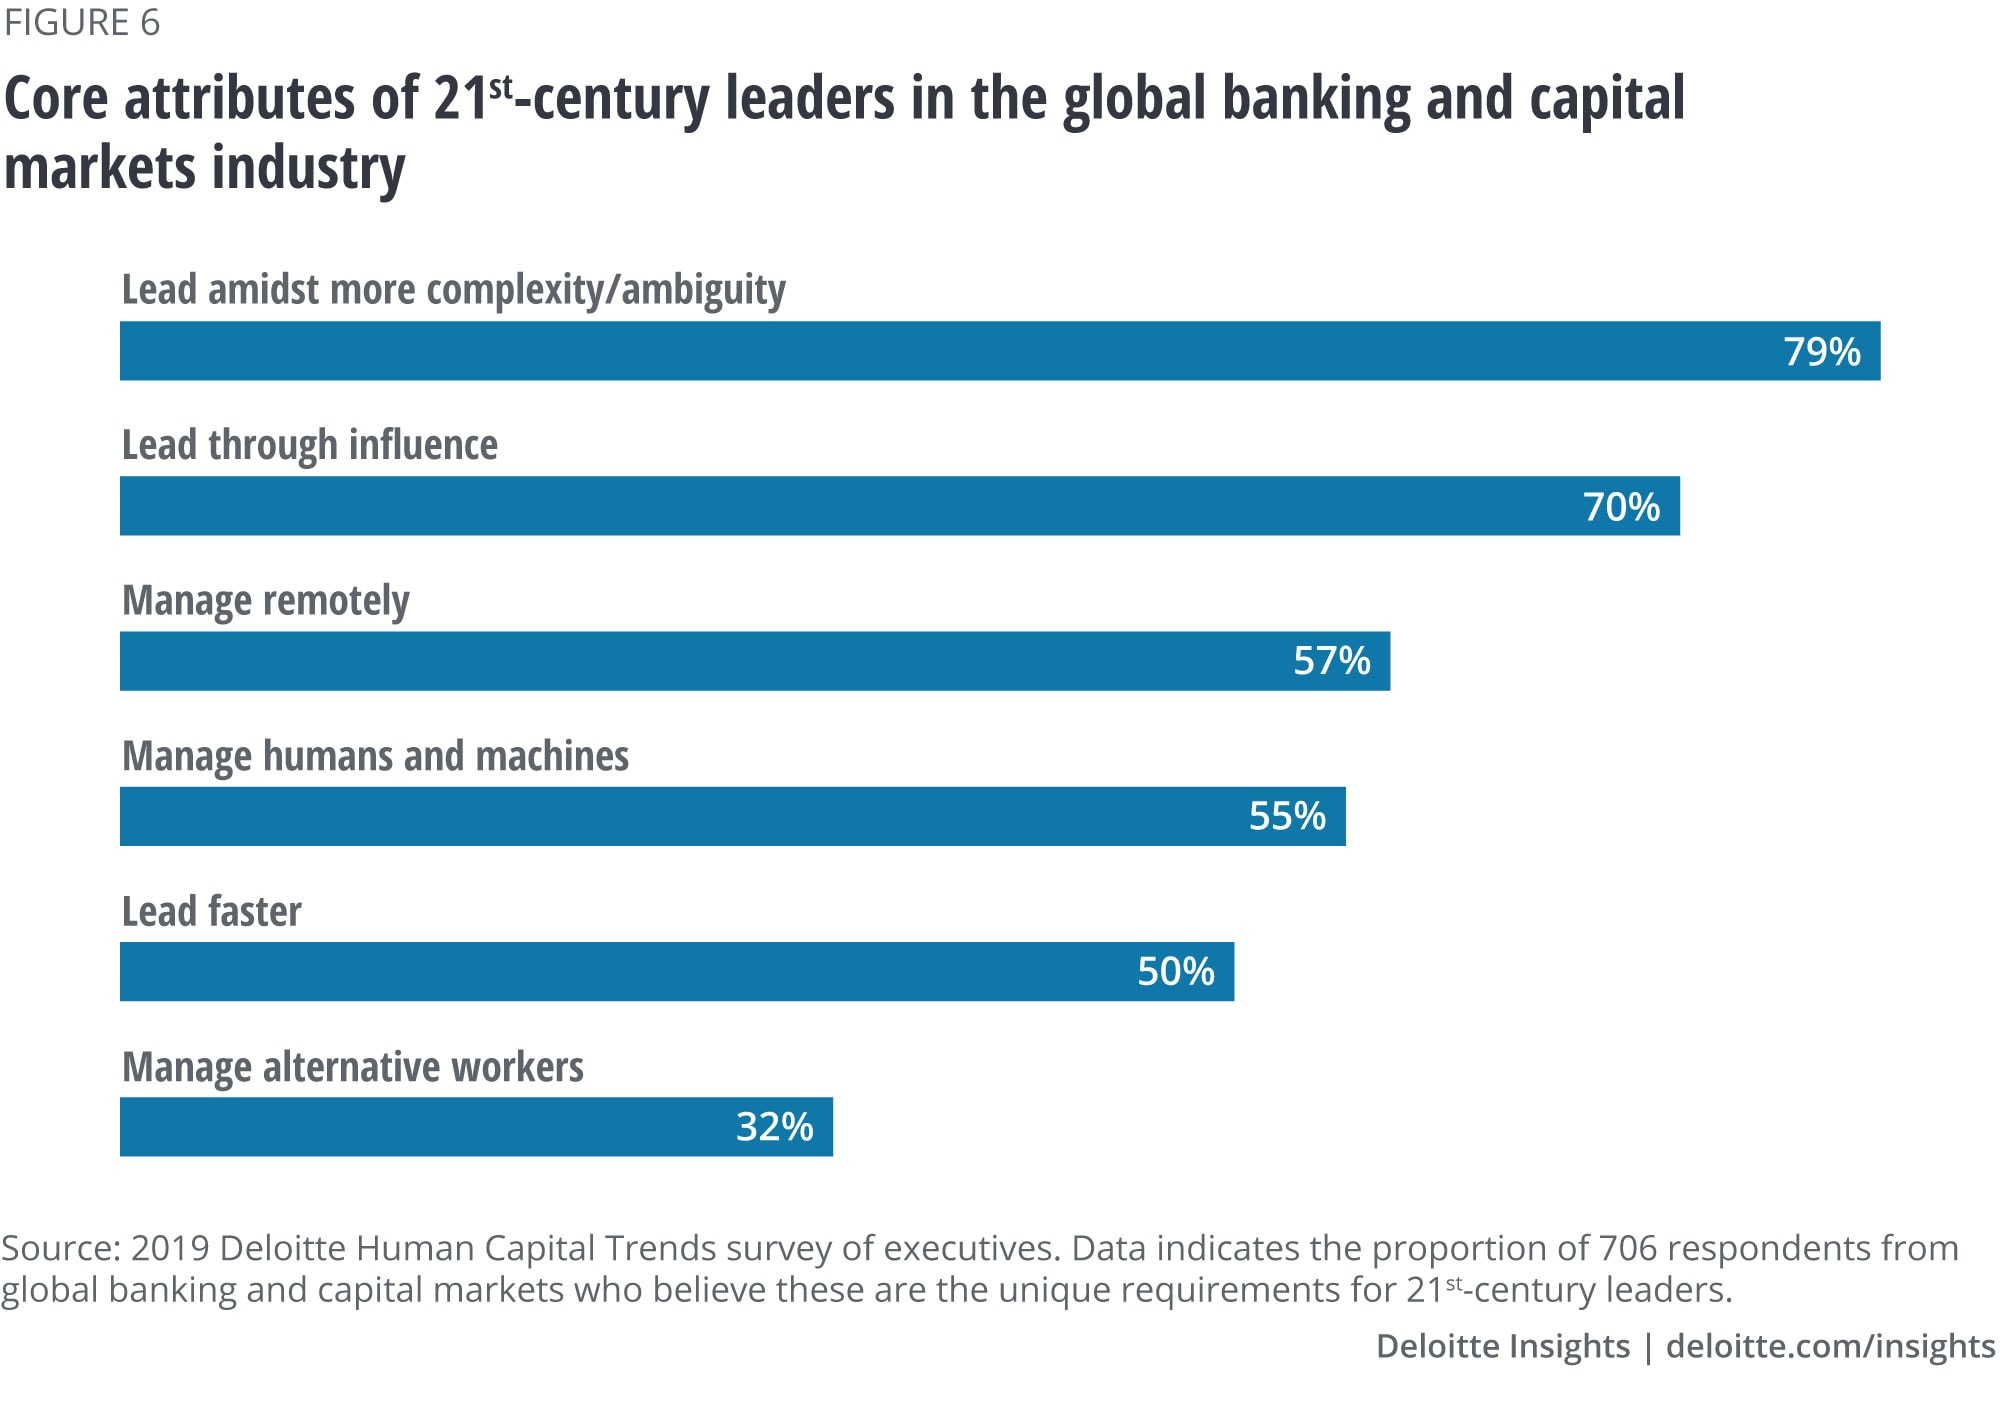 Core attributes of the 21st century leaders in the global banking and capital markets industry